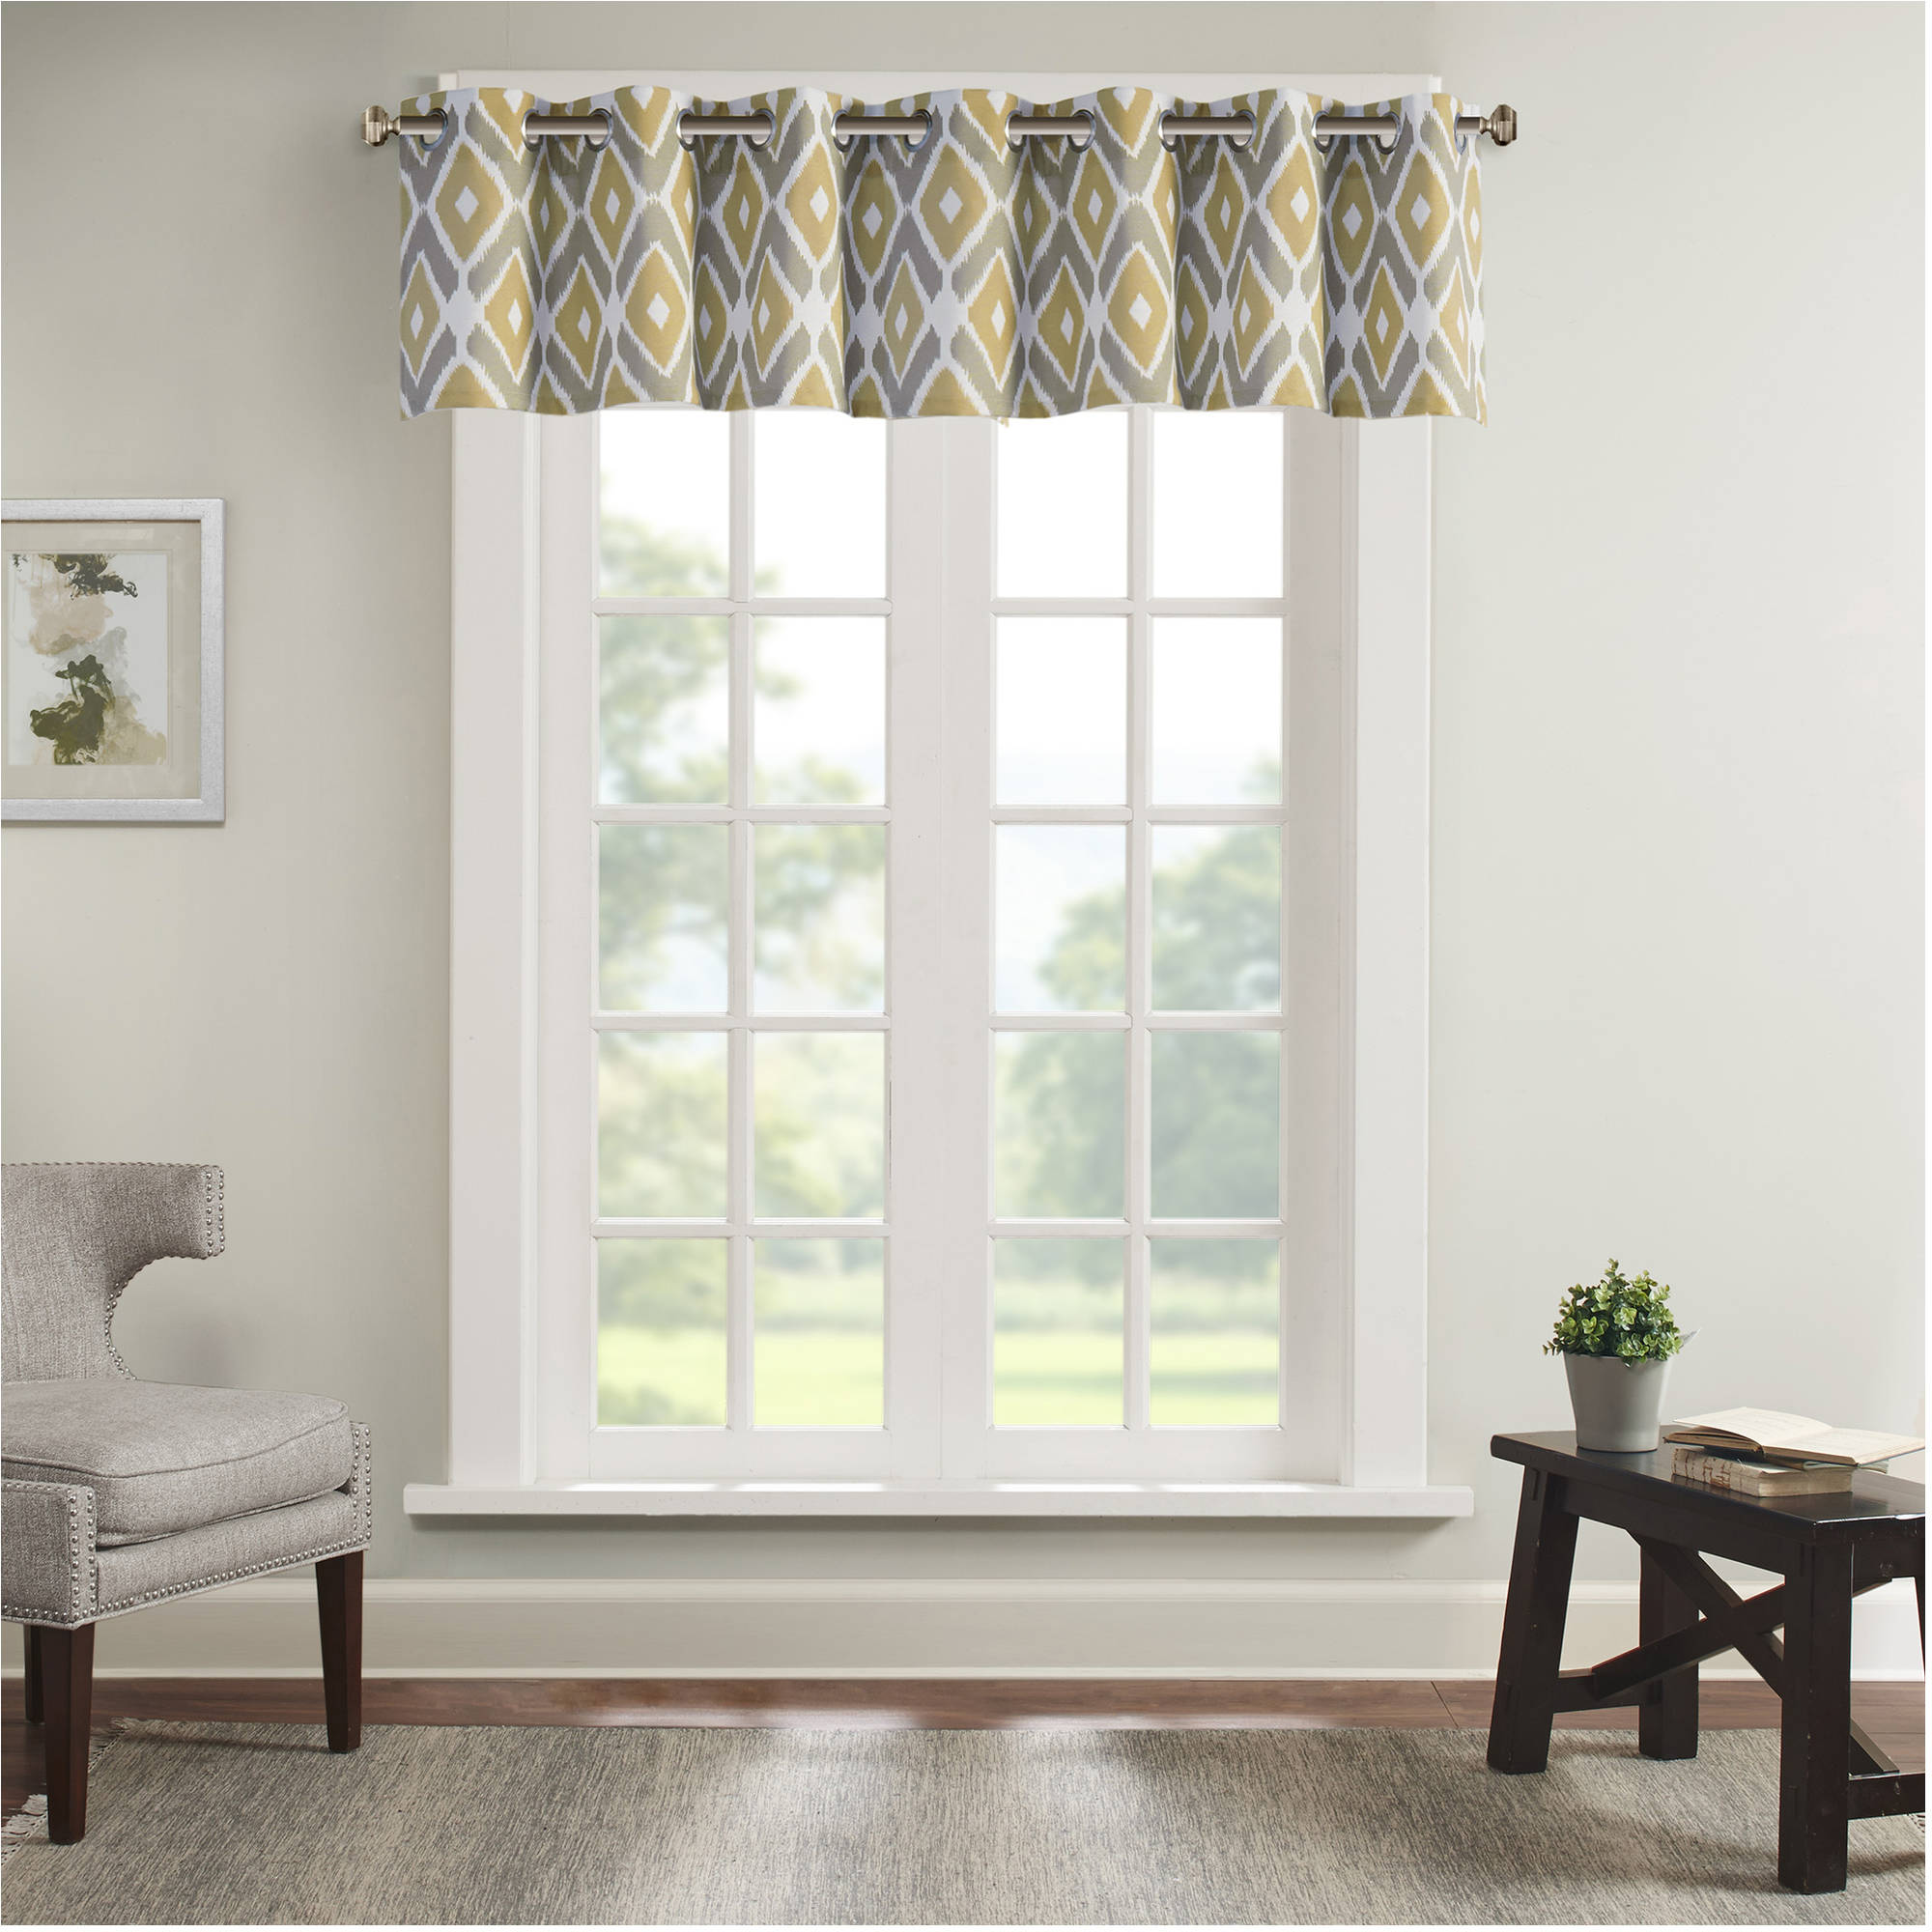 Home Essence Ender Diamond Printed Valance